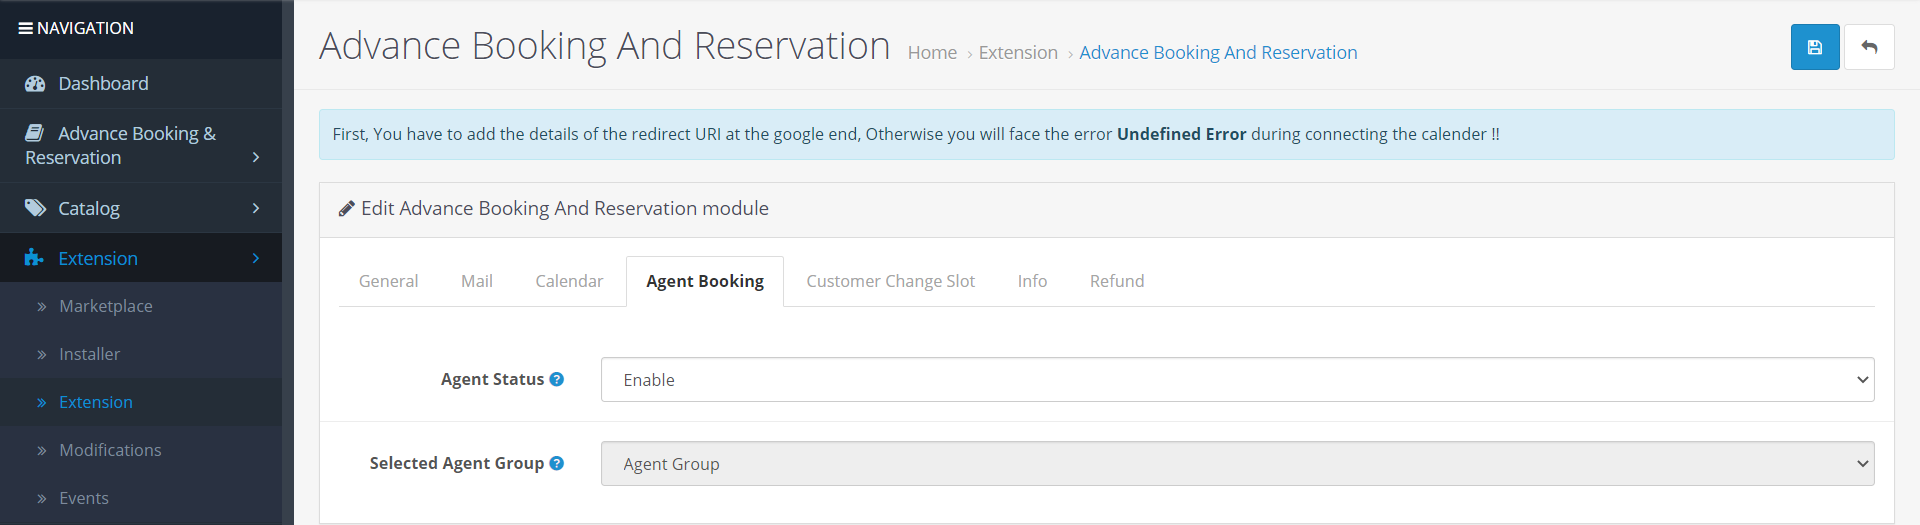 Advance-Booking-And-Reservation-04